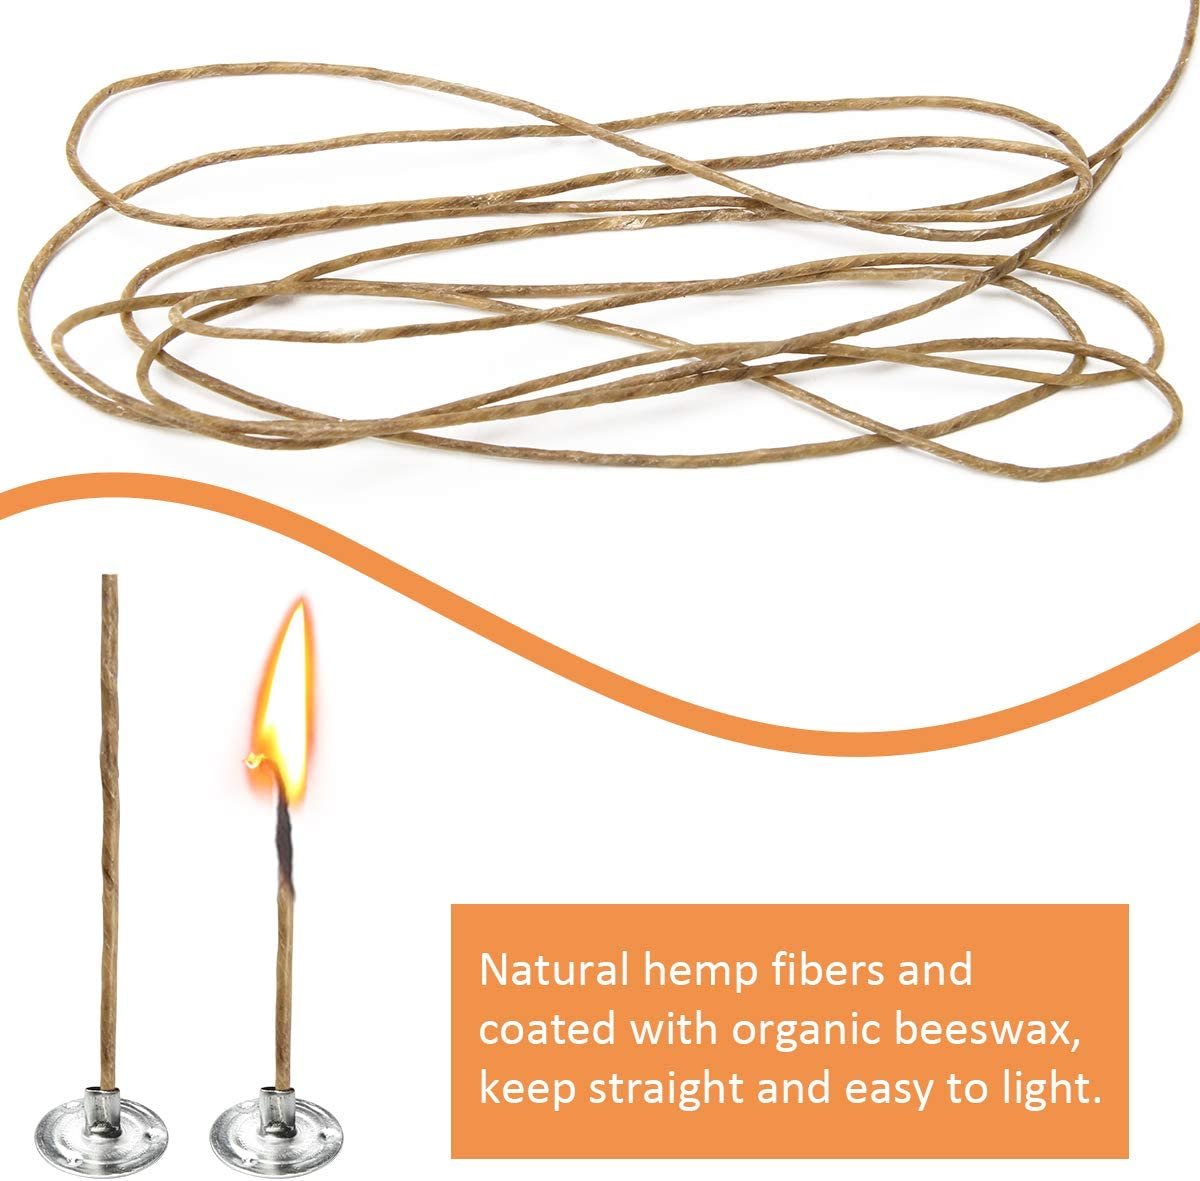 Natural Beeswax Coating for Candle Making 1.5mm Coitak 200FT Hemp Candle Wick with 200 PCS Metal Tabs